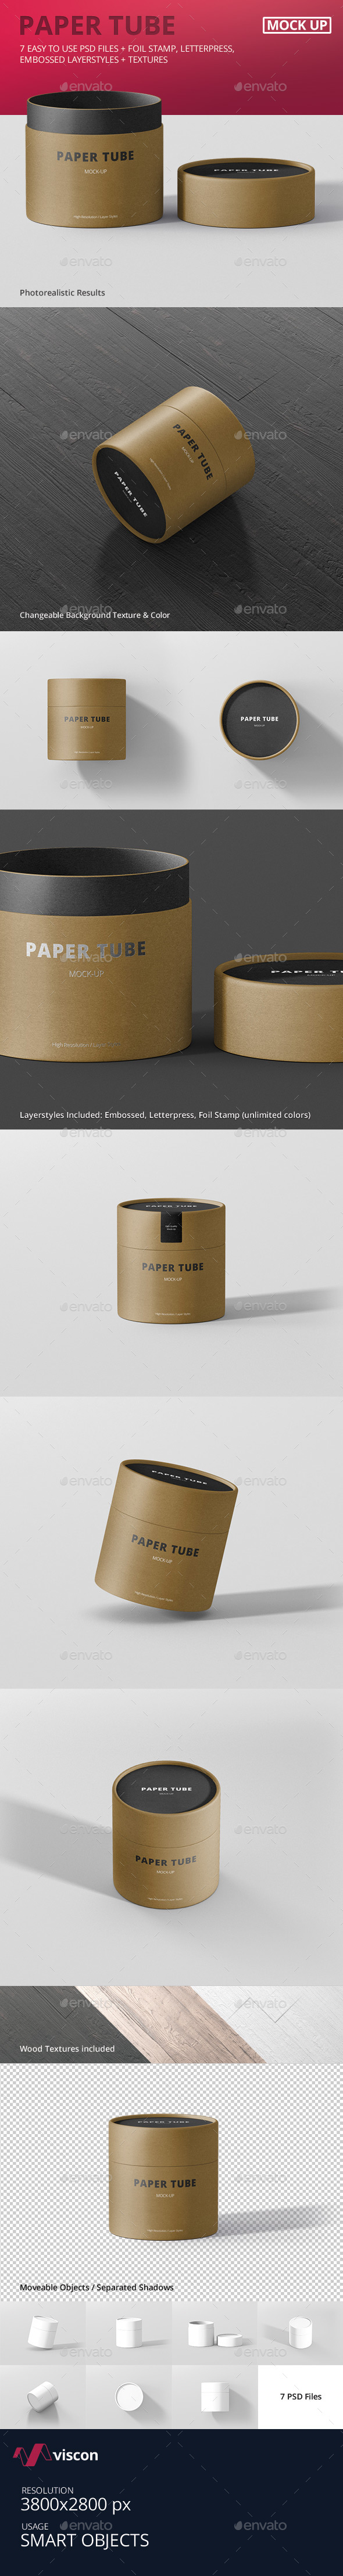 Paper Tube Packaging Mock-Up - Small